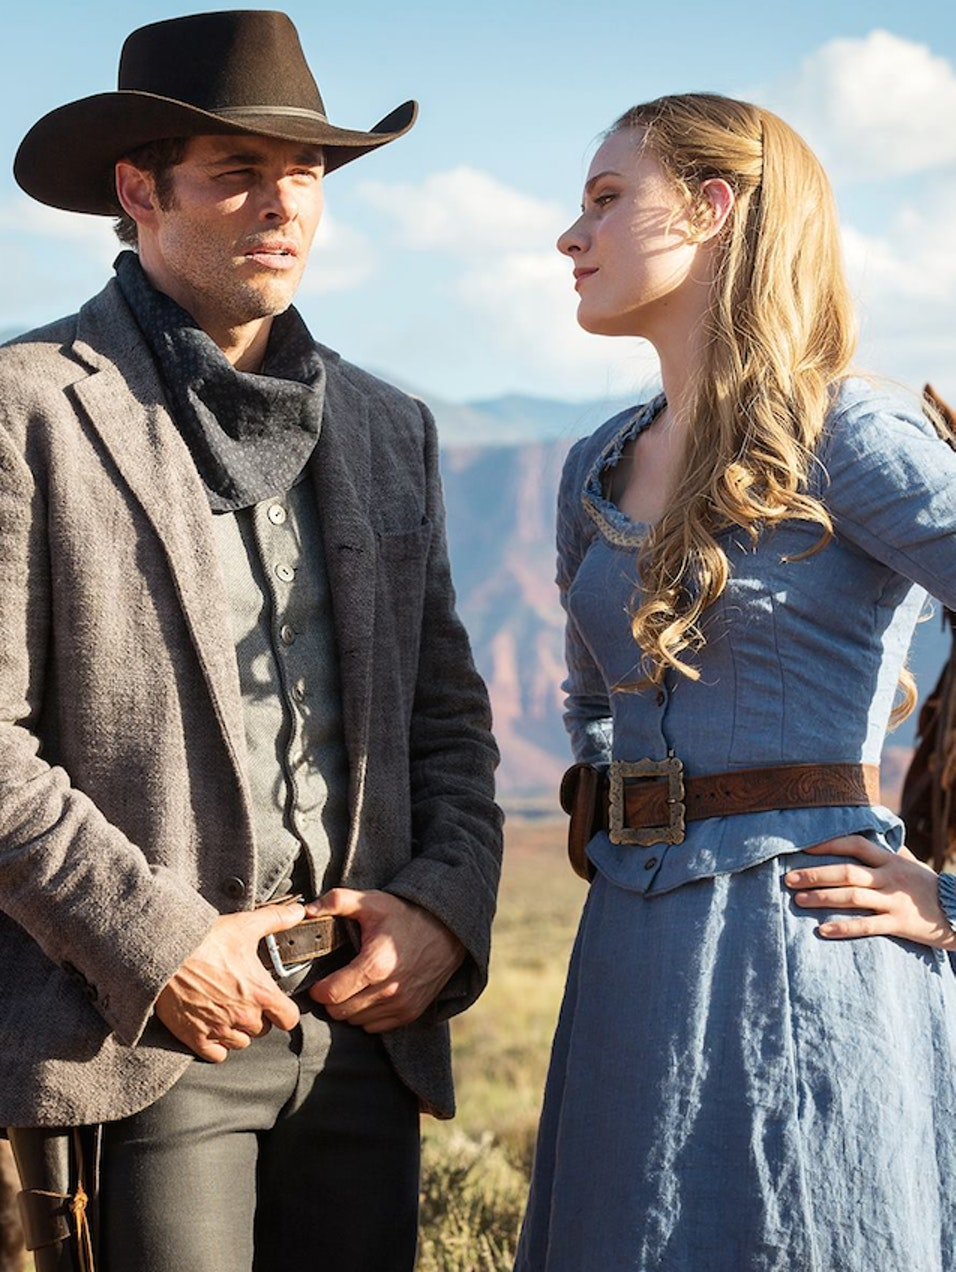 Westworld was among the 2016 Nebula Award nominees